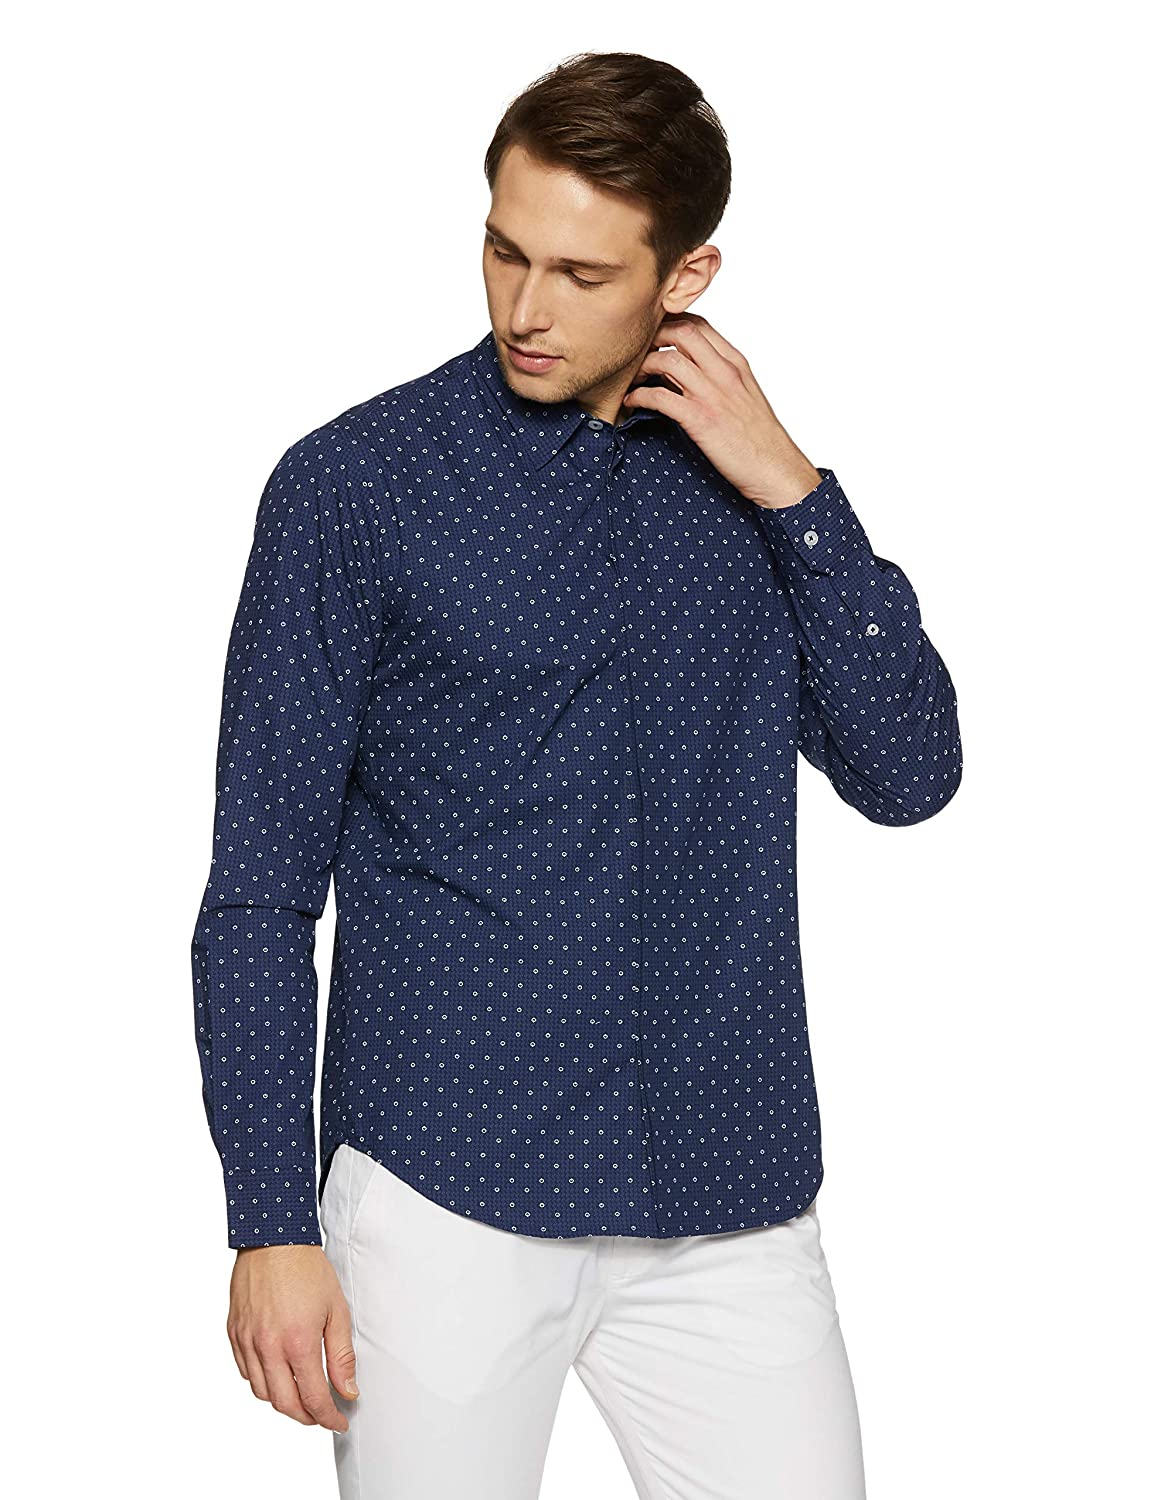 Casual Terrains Mens Tailored Slim-Fit Geometric Shirt with Hidden Placket